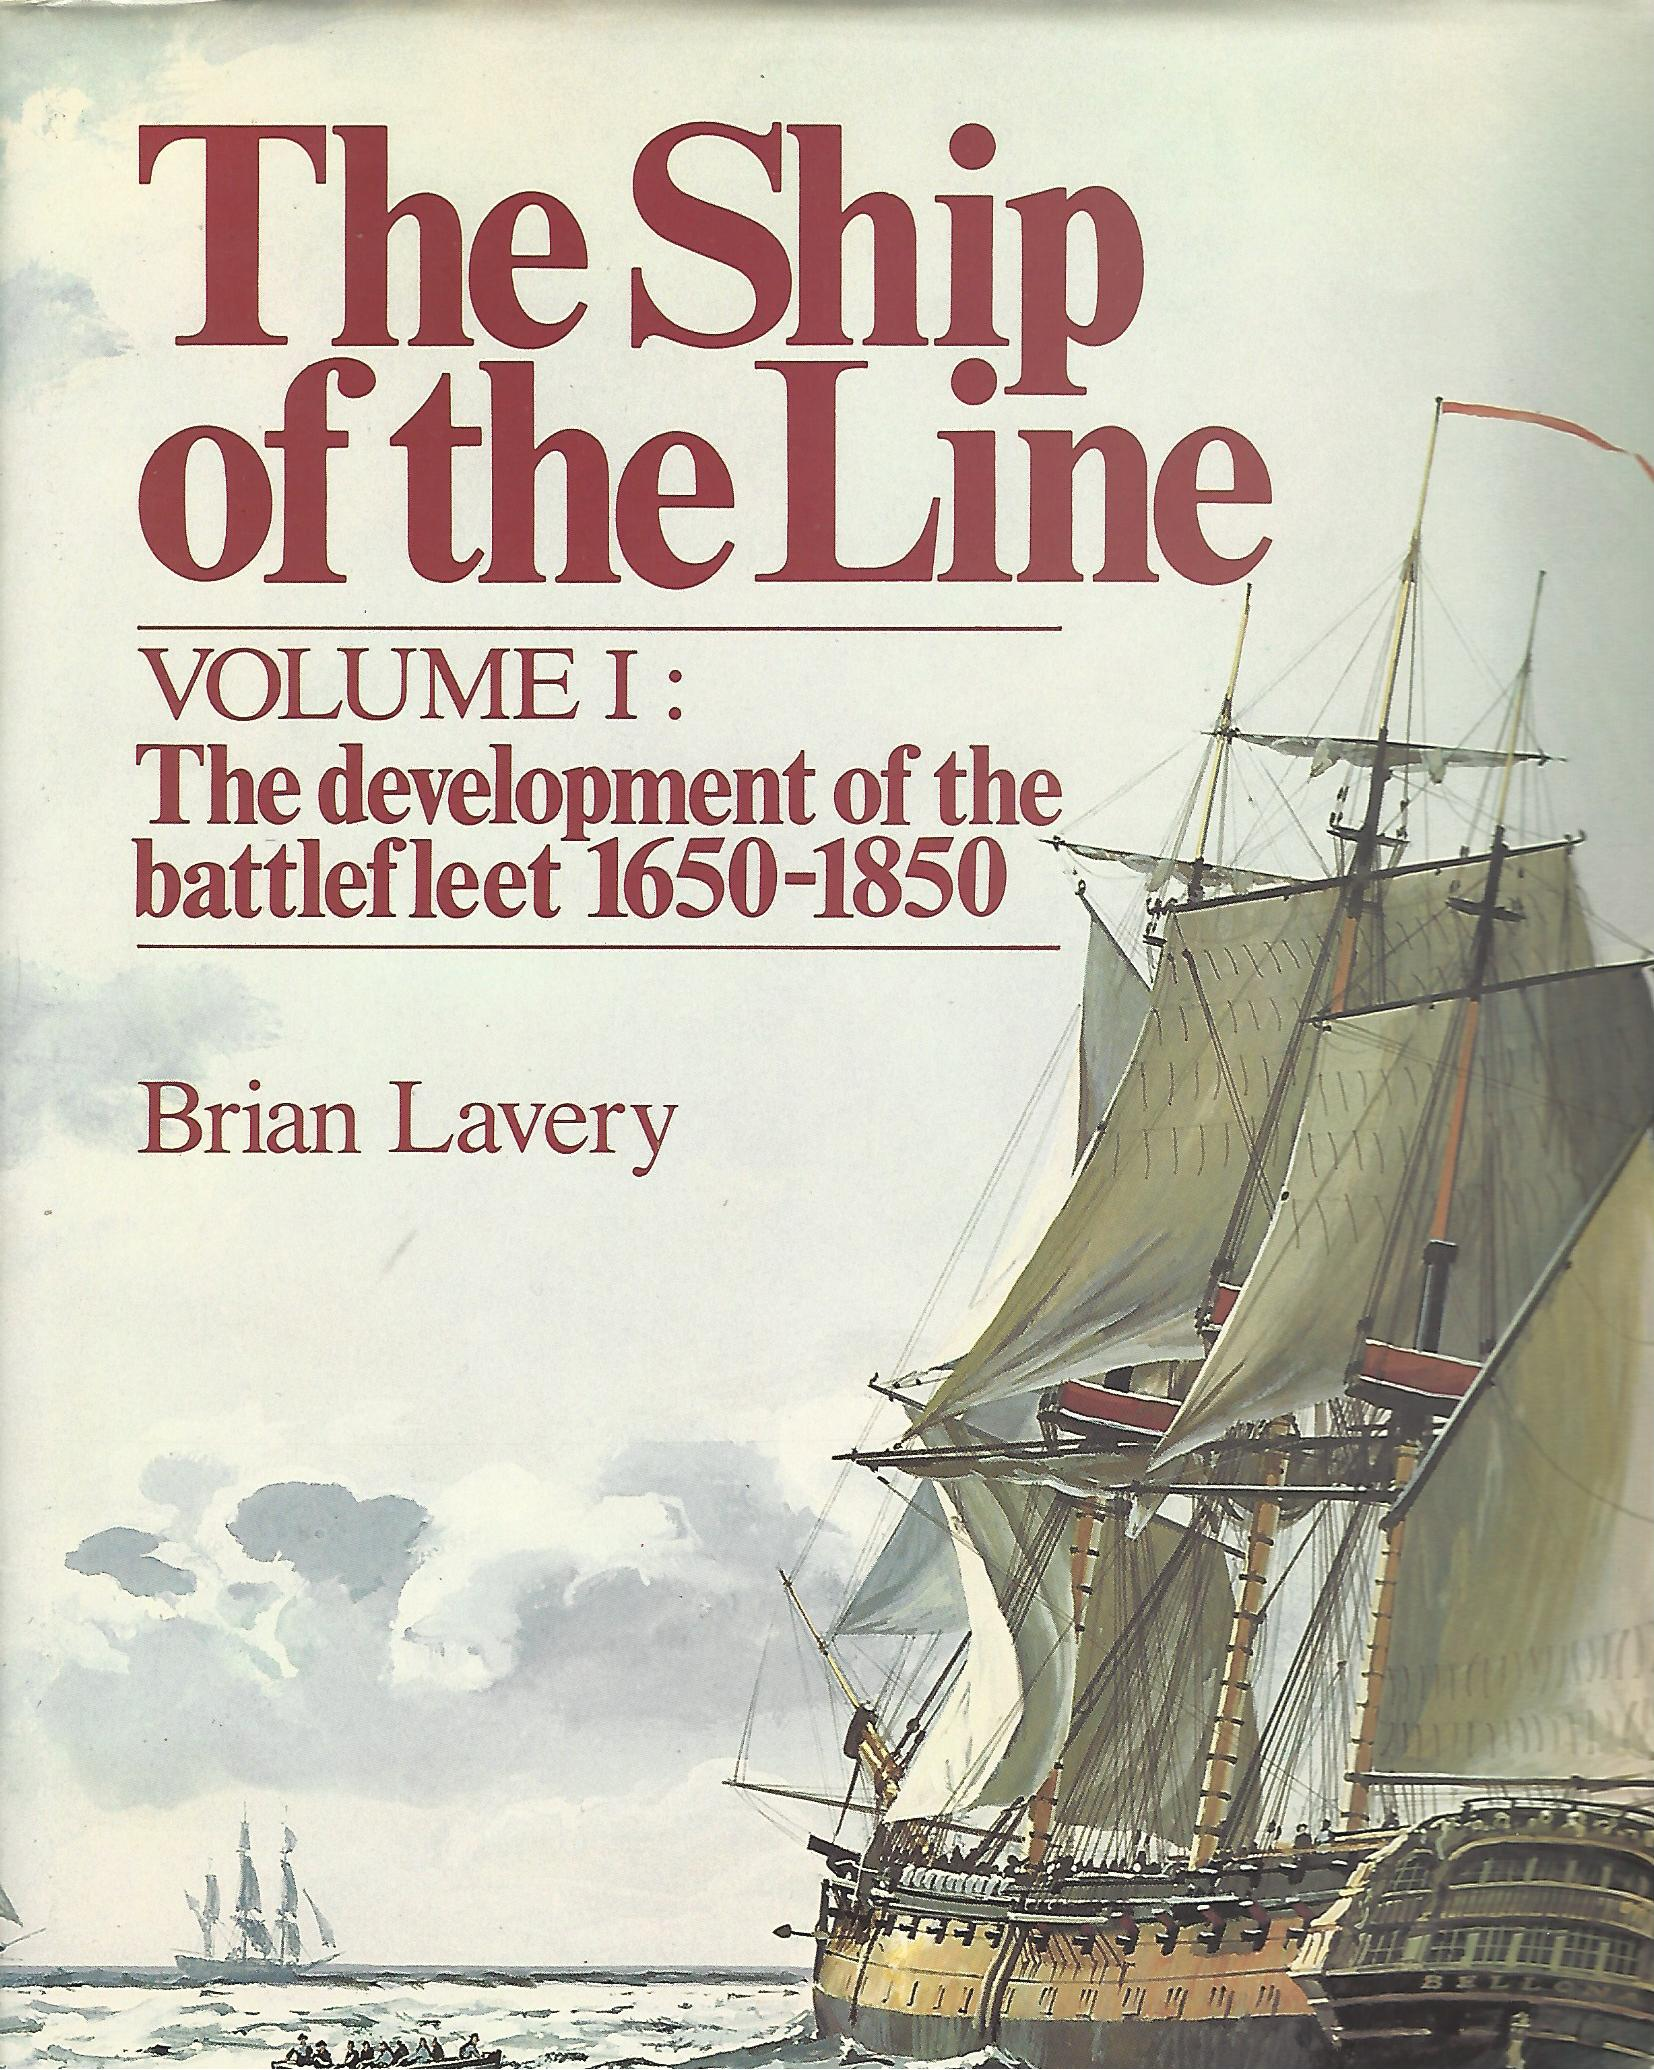 Image for The Ship of the Line - Volume 1&2 - The Development of the Battlefleet: 1650-1850 & Design, Construction and Fittings